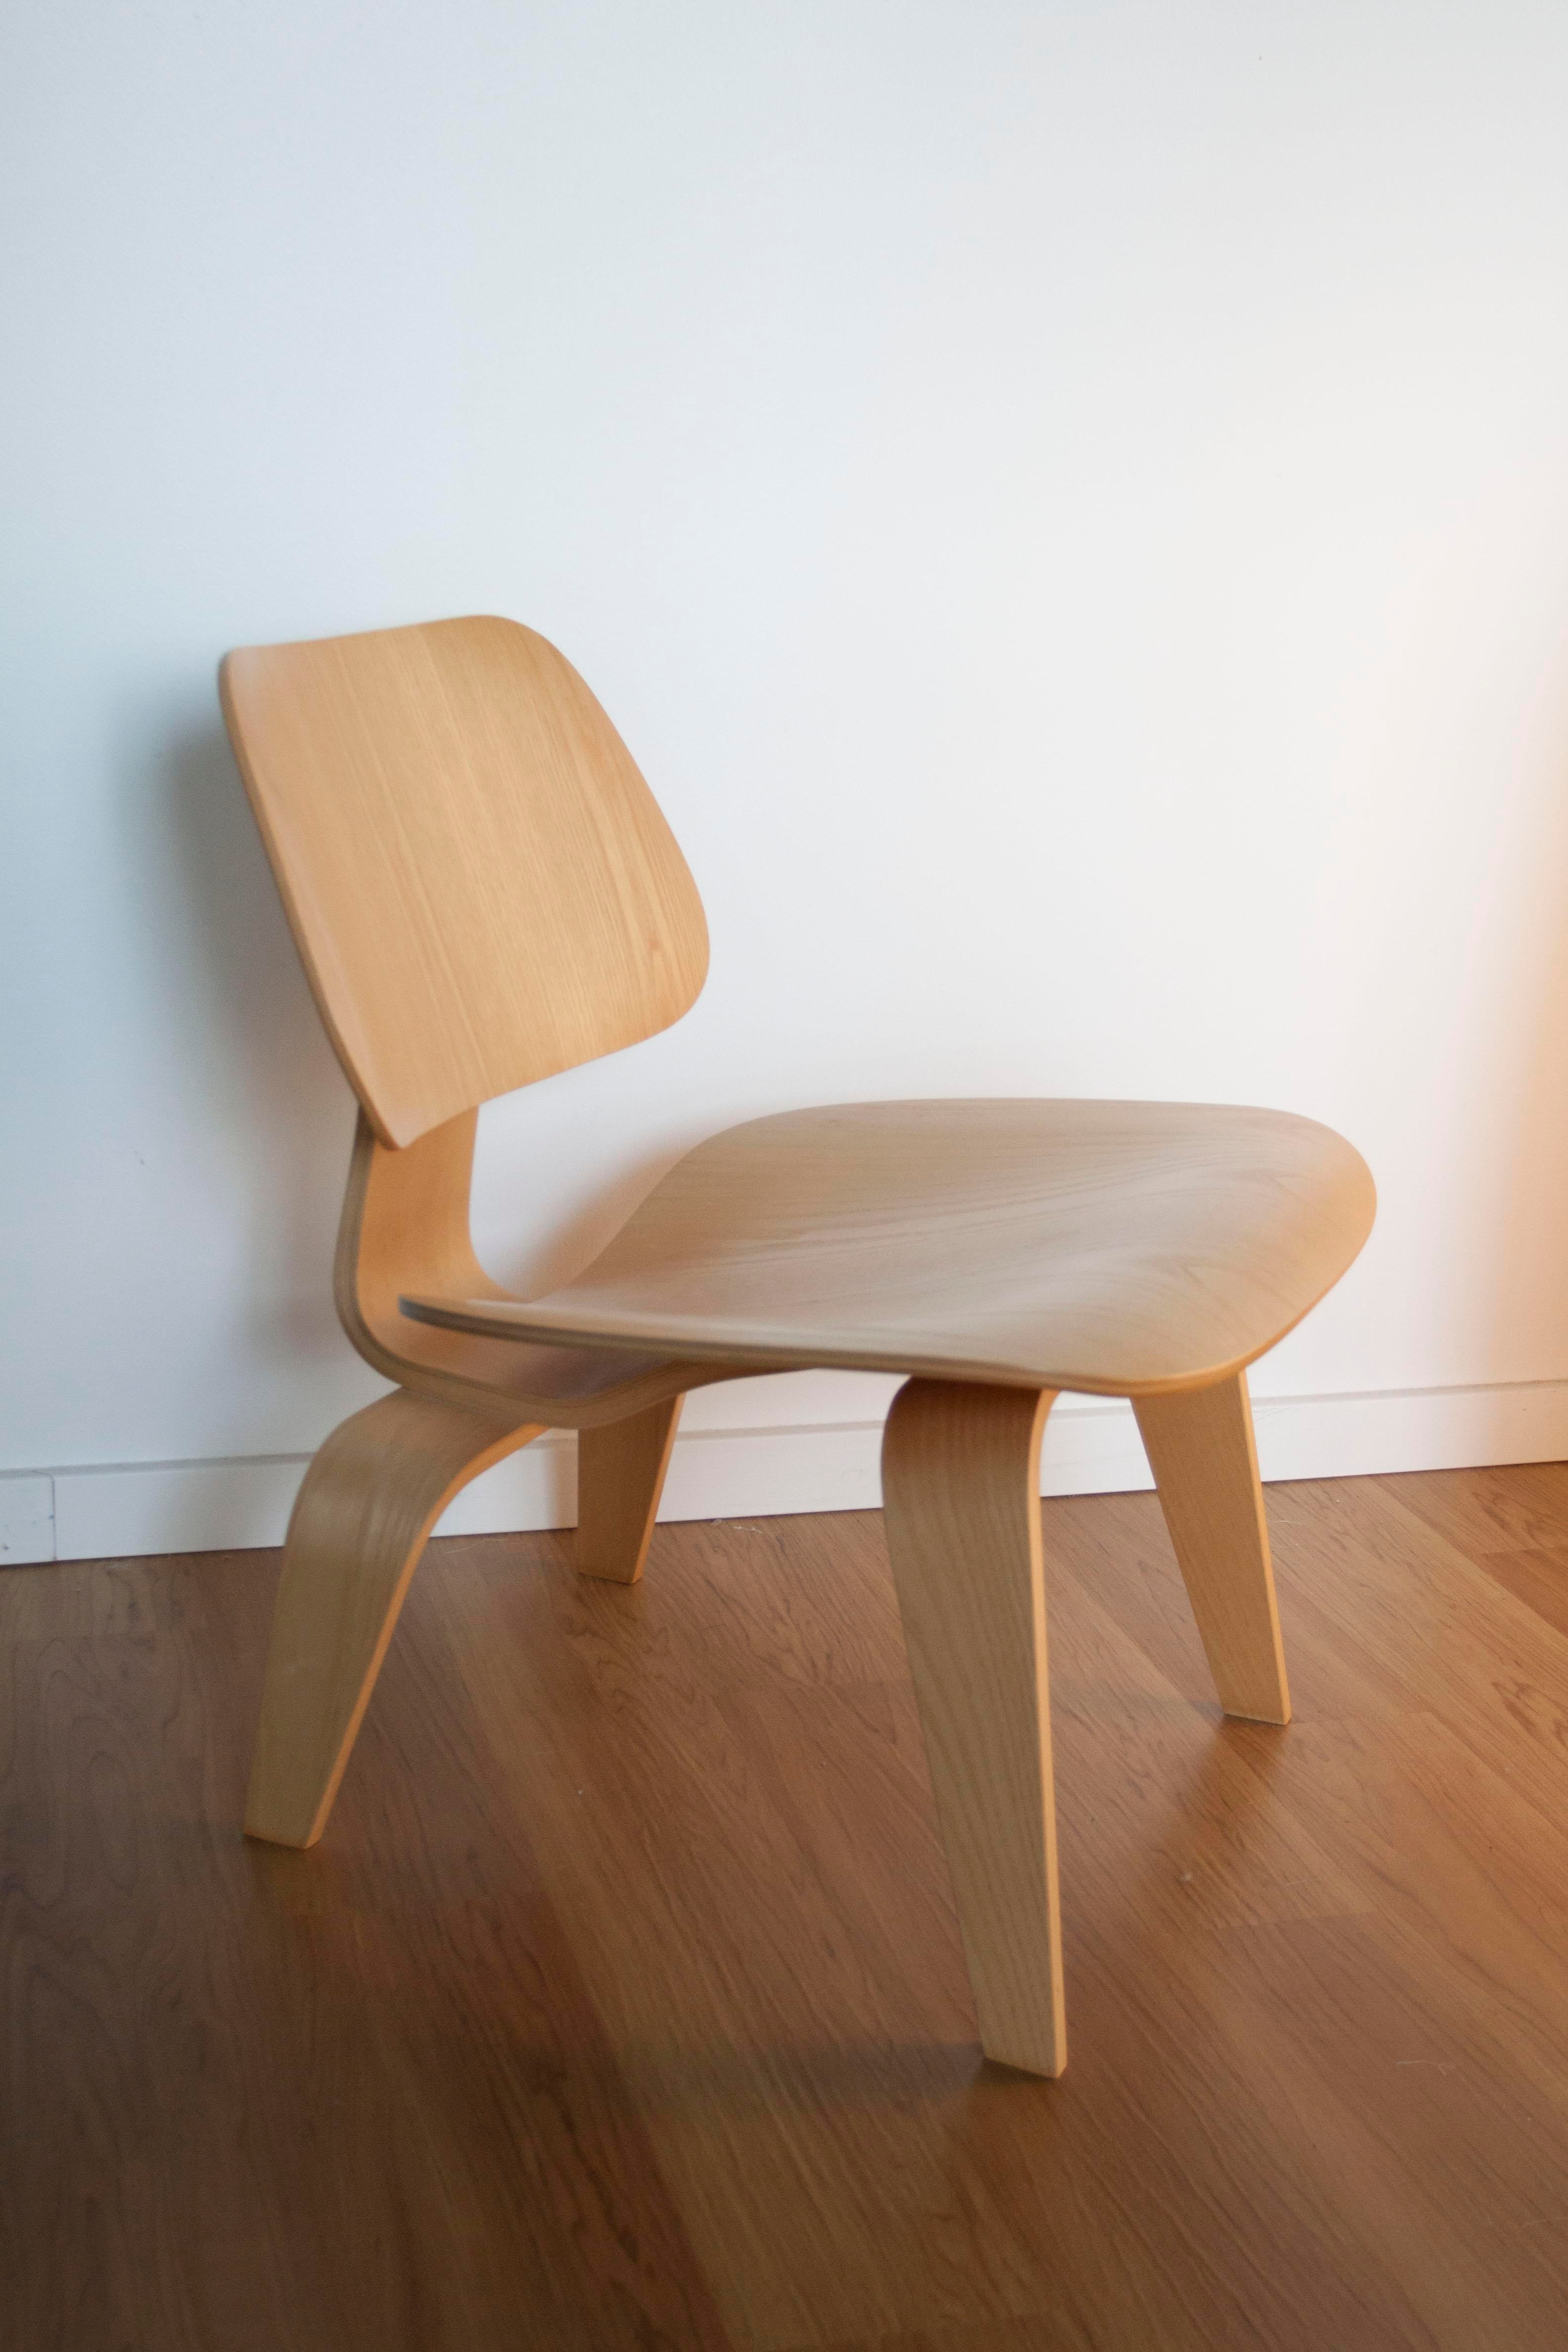 Eames Herman Miller LCW Chair   Image 3 Of 10